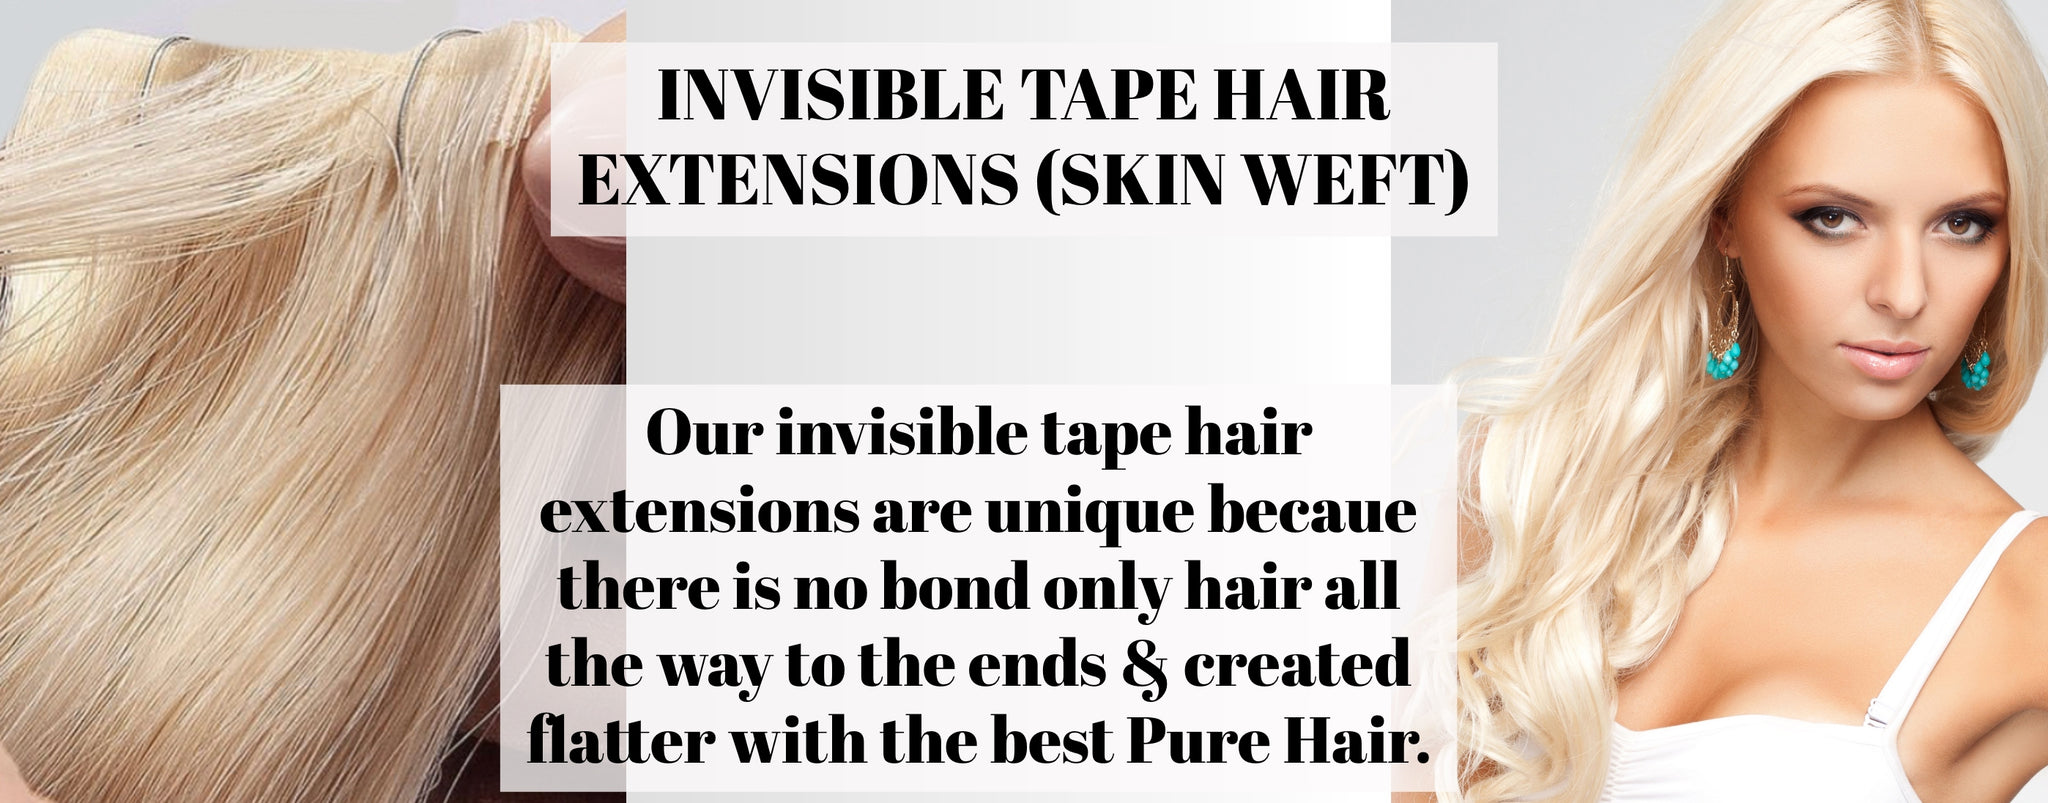 invisible tape hair extensions skin weft Australia